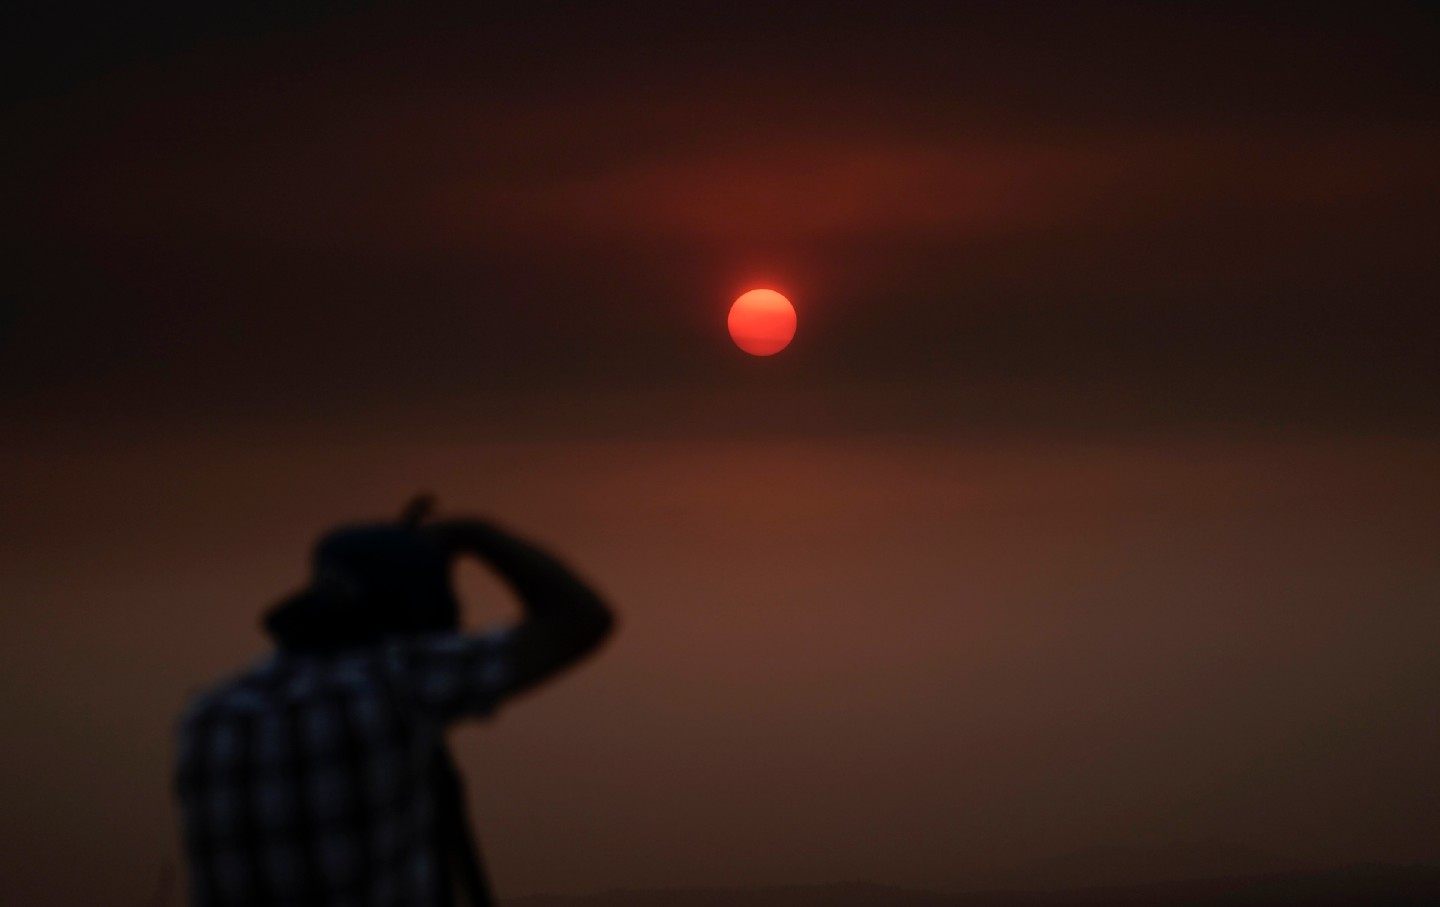 A man takes a photo of the sun in a blood orange sky during the West Coast fires